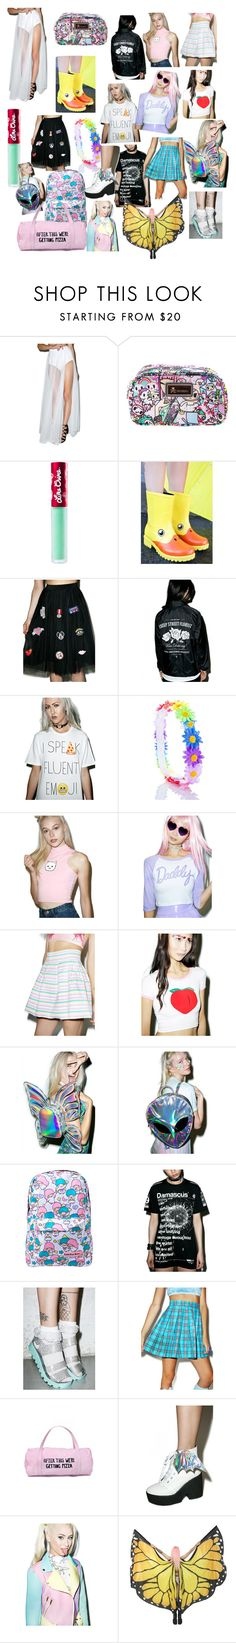 """""""DollsKill"""" by mygirlnirv124 on Polyvore featuring Tokidoki, Lime Crime, Creep Street, Goodie Two Sleeves, 24HRS, A.Peach, O-Mighty, Current Mood, Disturbia and Loungefly"""